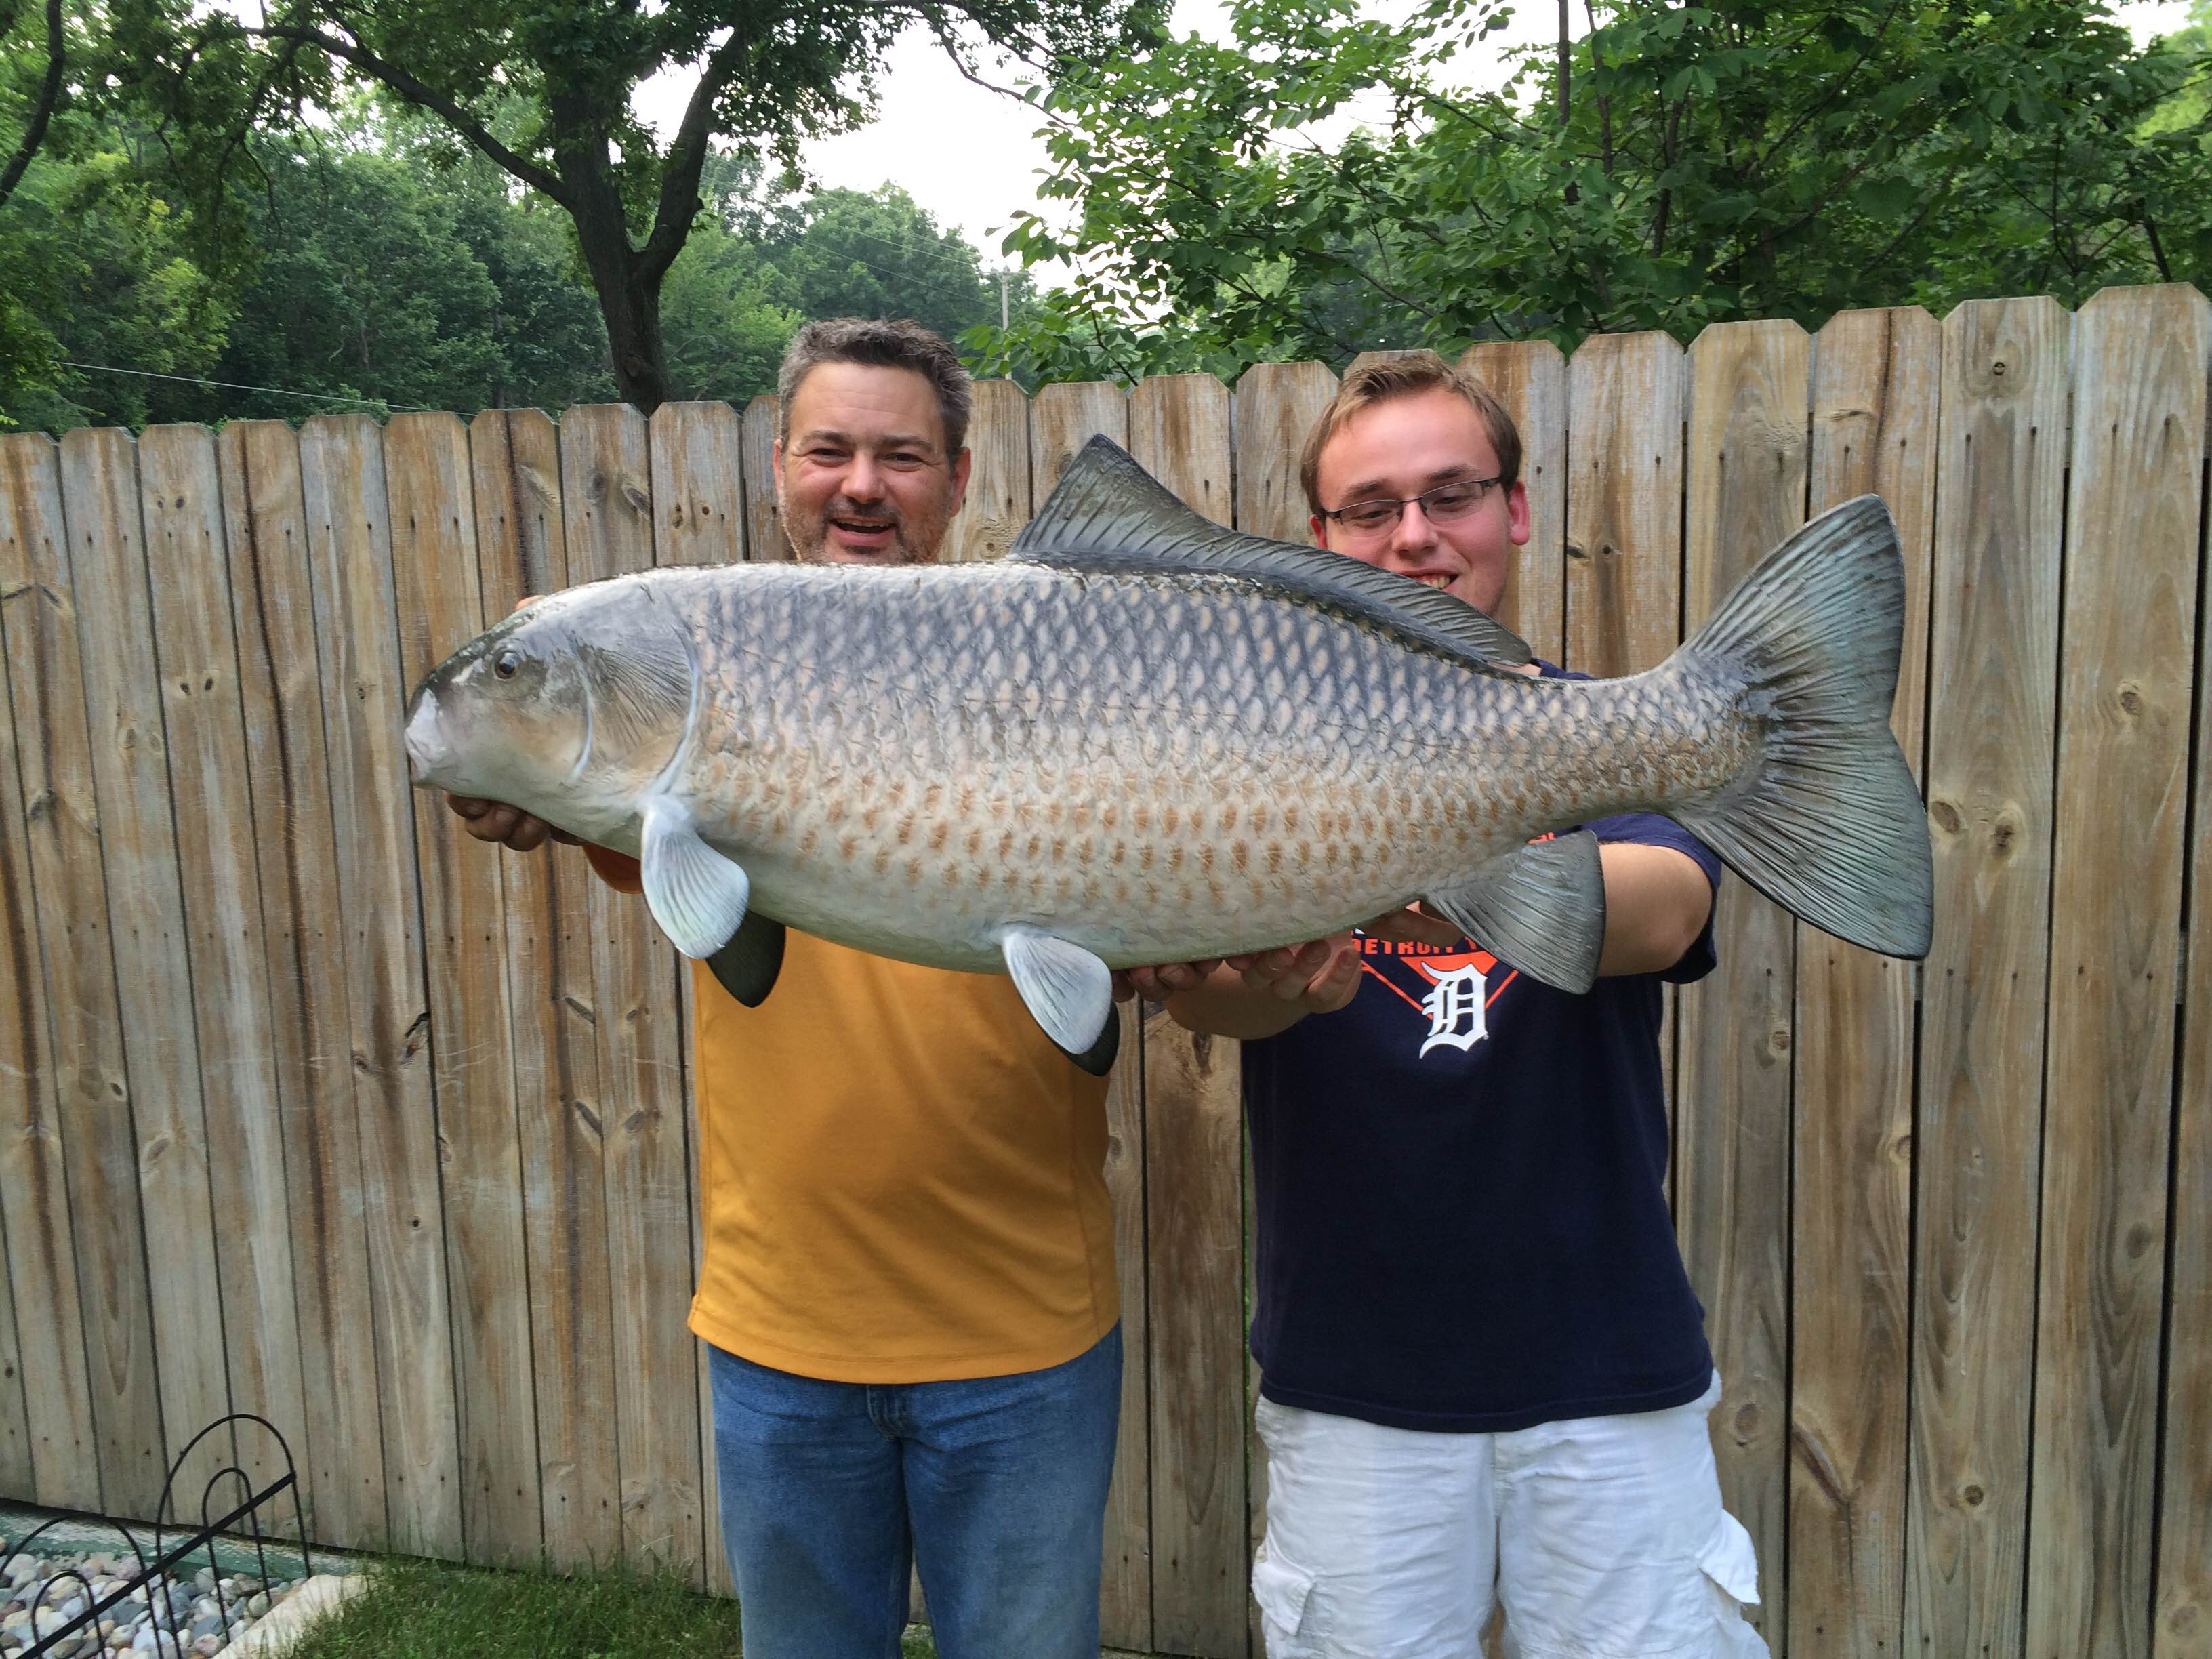 e03c8ea3e7 Tony and Josh Witherell hold a monster buffalo fish they caught in west  Michigan. They